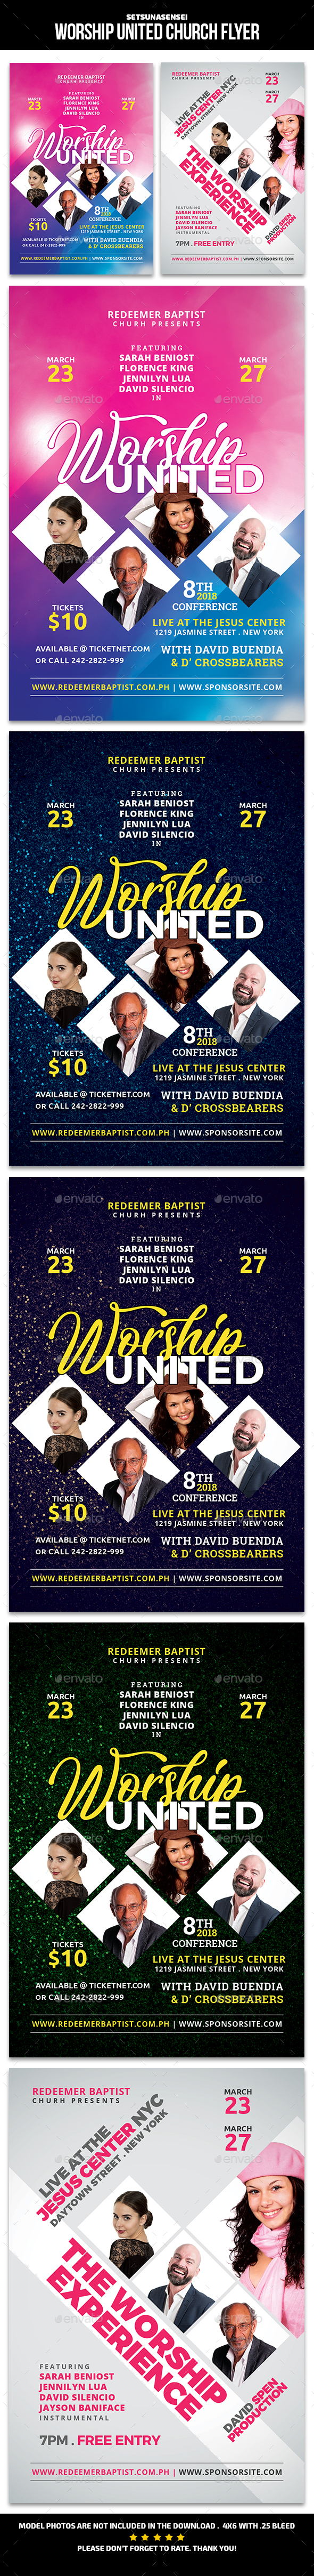 Worship United and the Worship Experience Church Flyer - Church Flyers